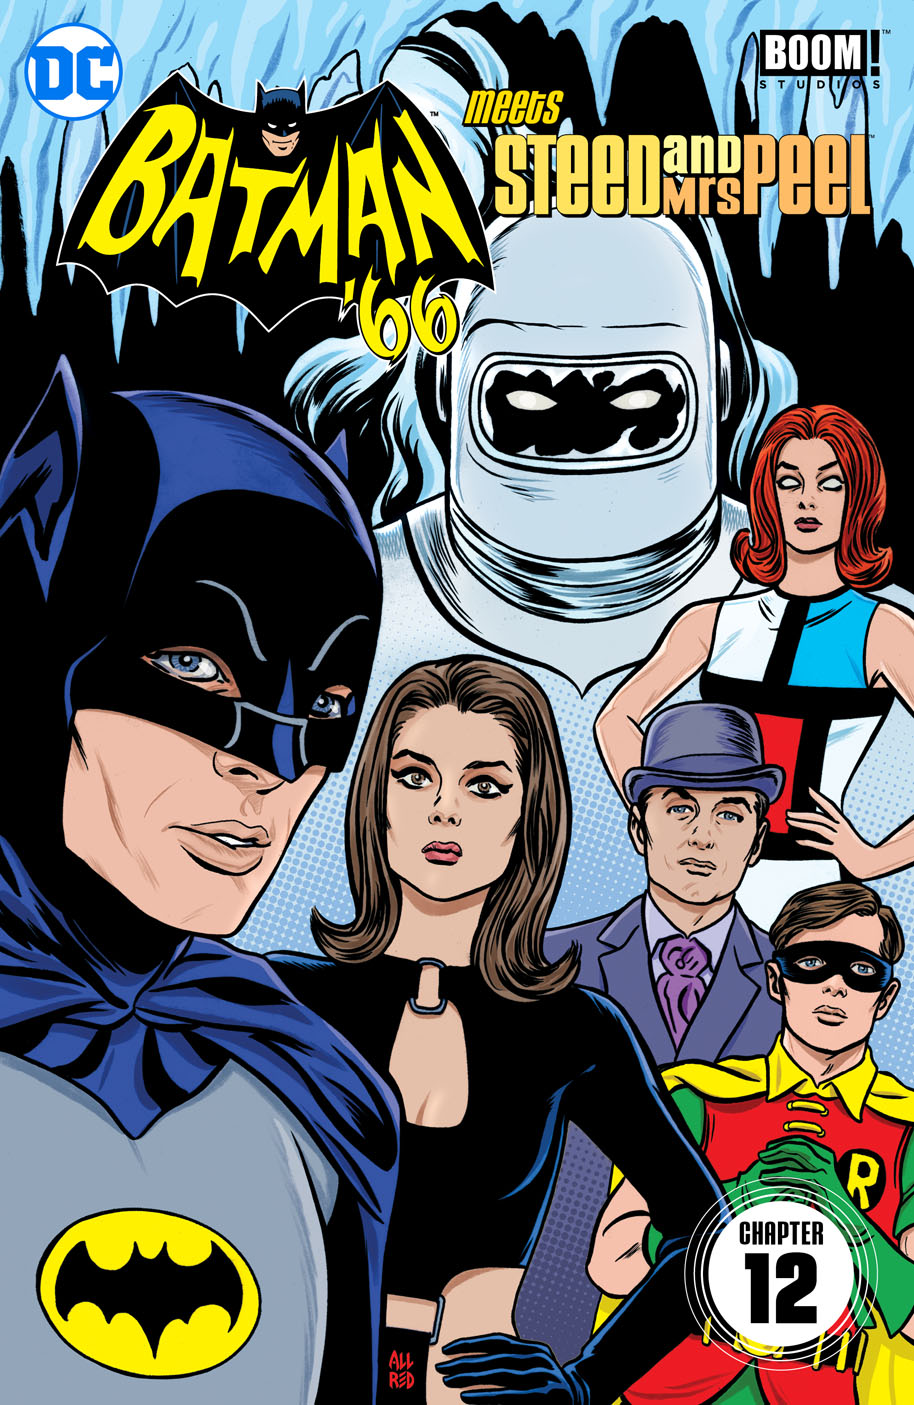 Batman 66 Meets Steed and Peel 12 cover